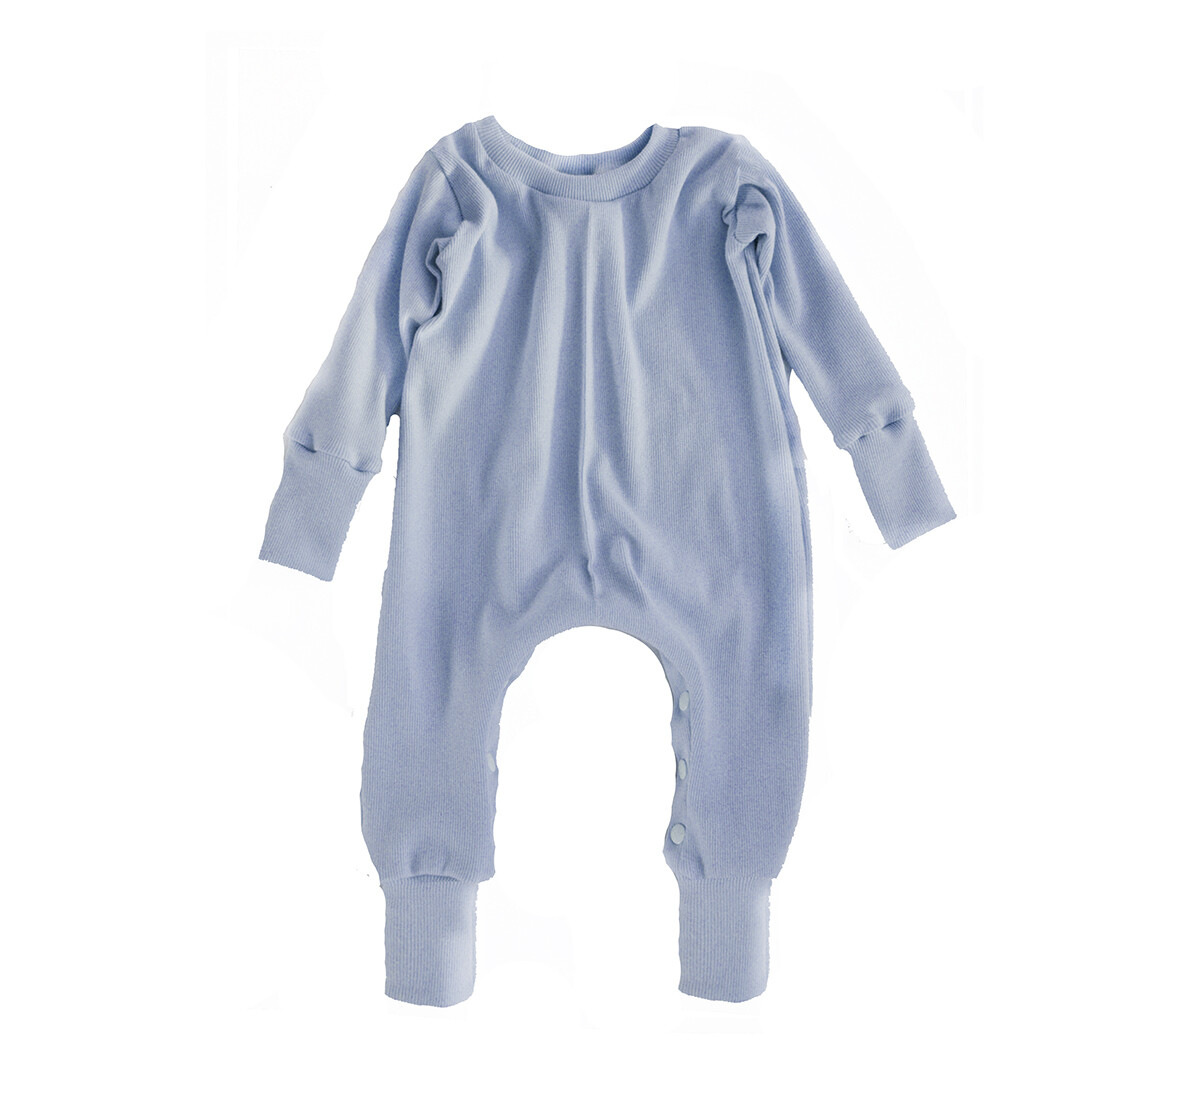 Little Sprout™ Grow with Me Footless Ribbed Knit Sleeper | Stone